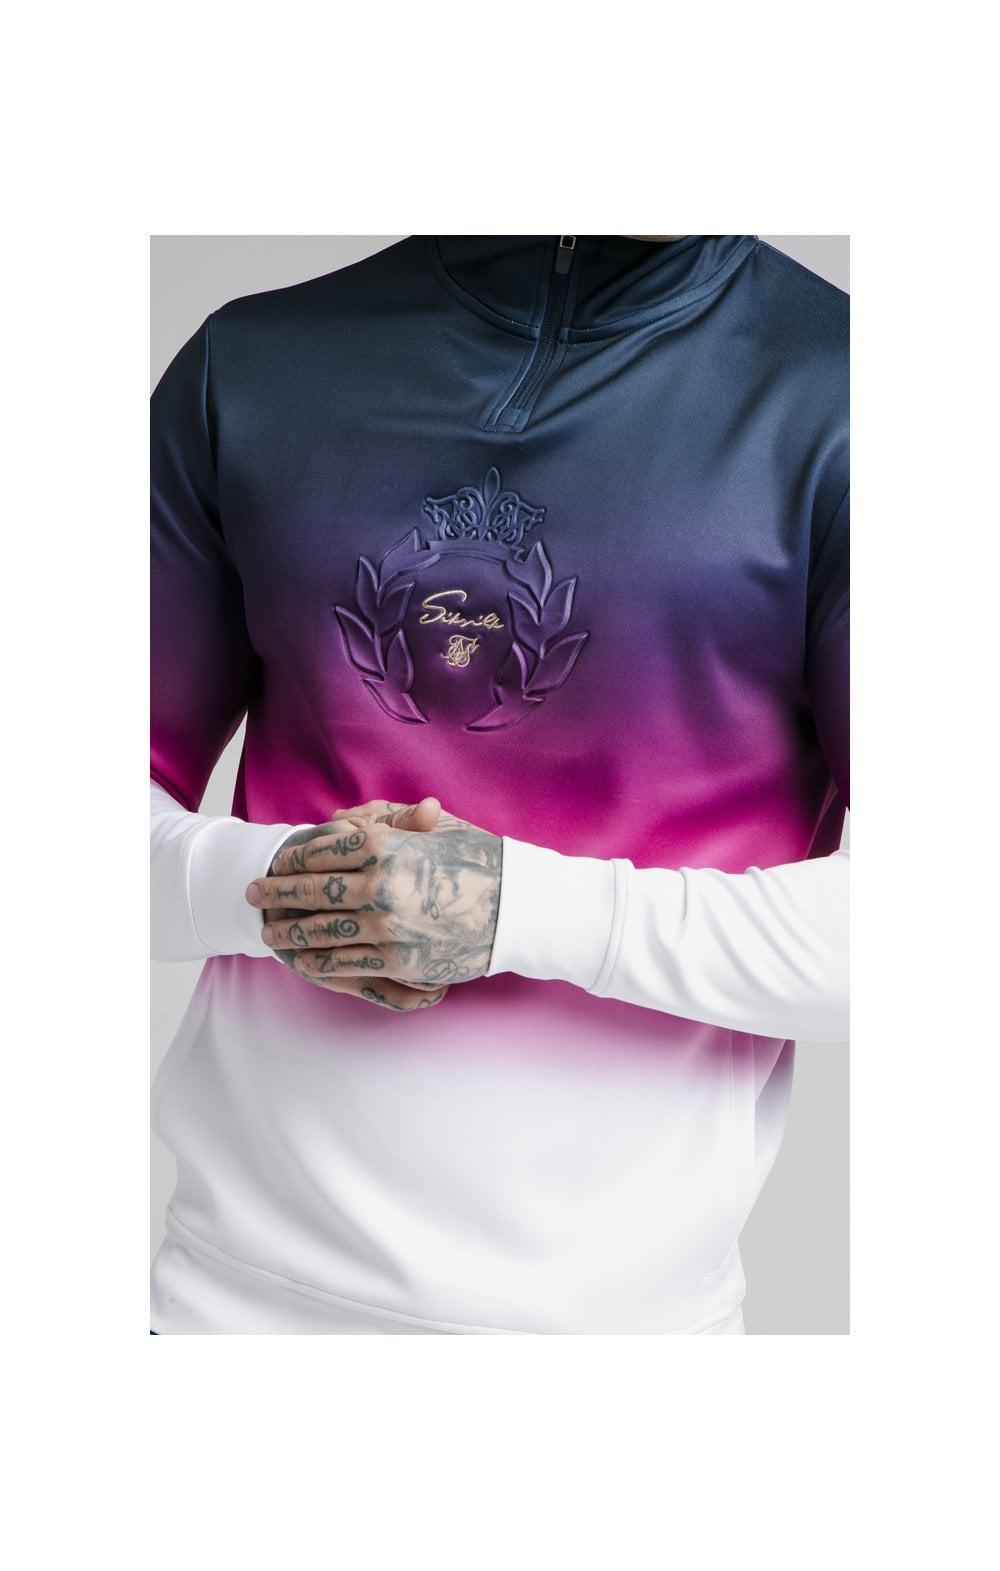 SikSilk Quarter Zip Overhead Track Top - Navy, Pink & White (1)